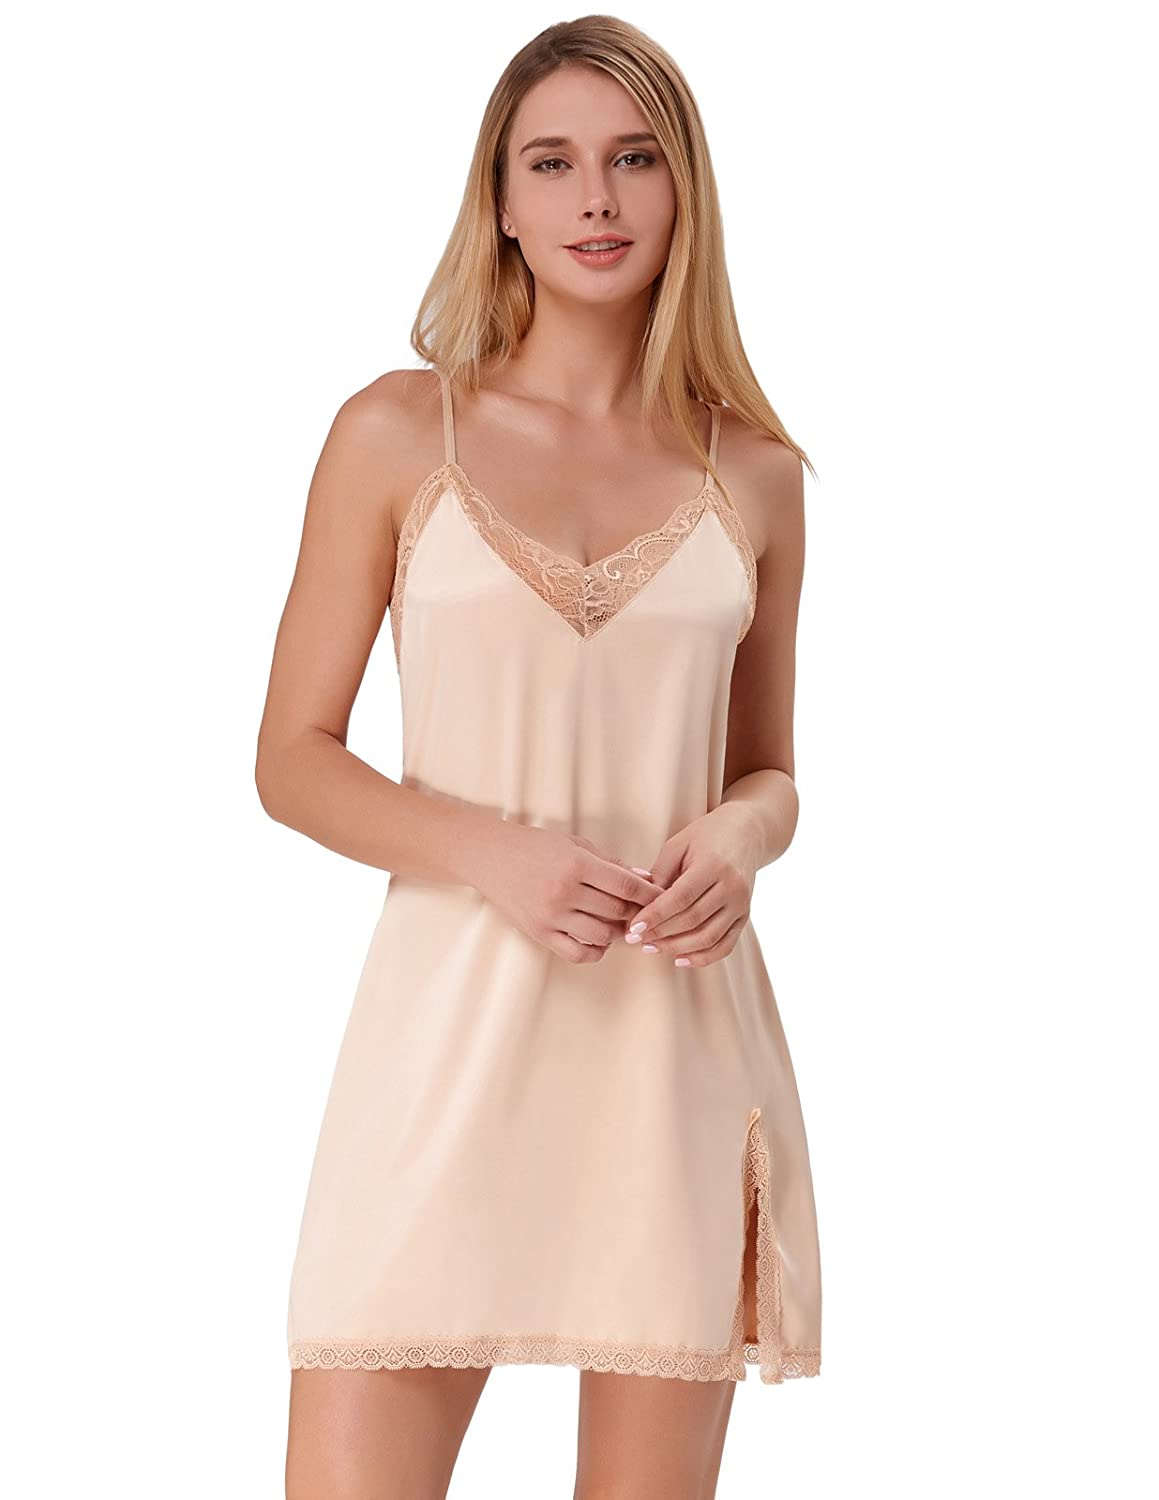 Zexxxy Women Nightgowns Sexy Lingerie Slip Lace Chemises Satin Sleepwear ZE0054 at Amazon Womens Clothing store: